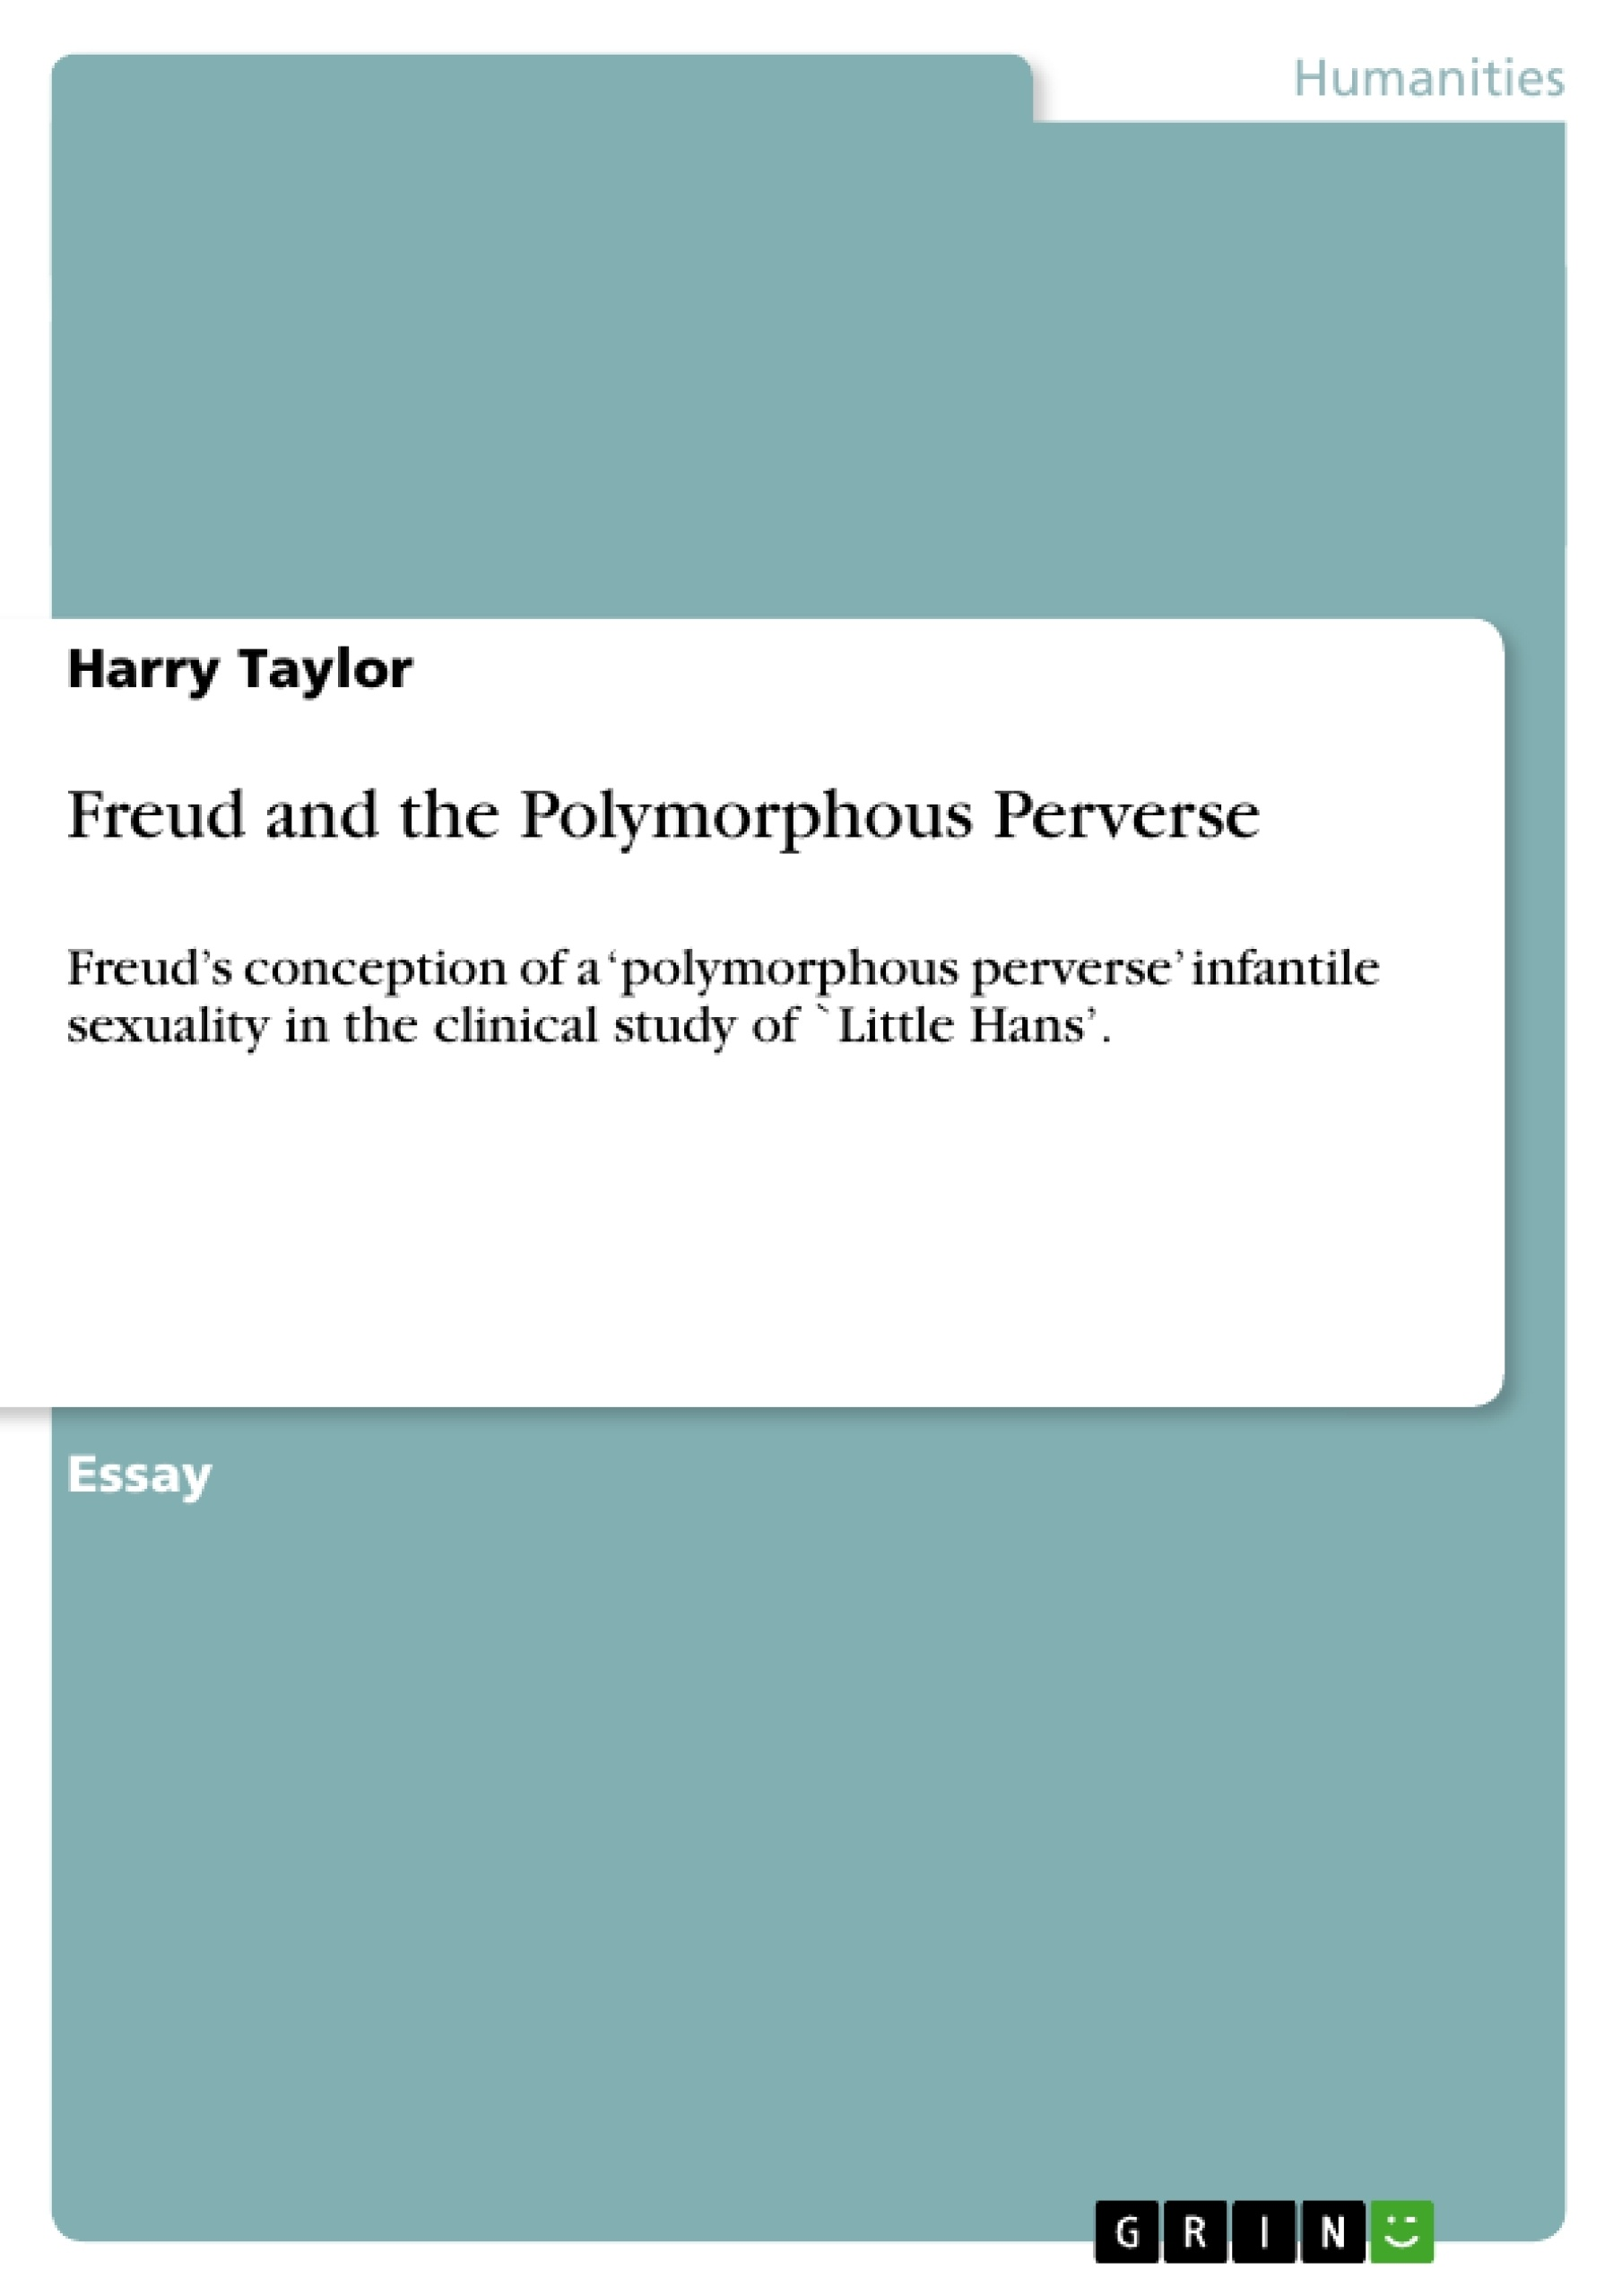 Title: Freud and the Polymorphous Perverse